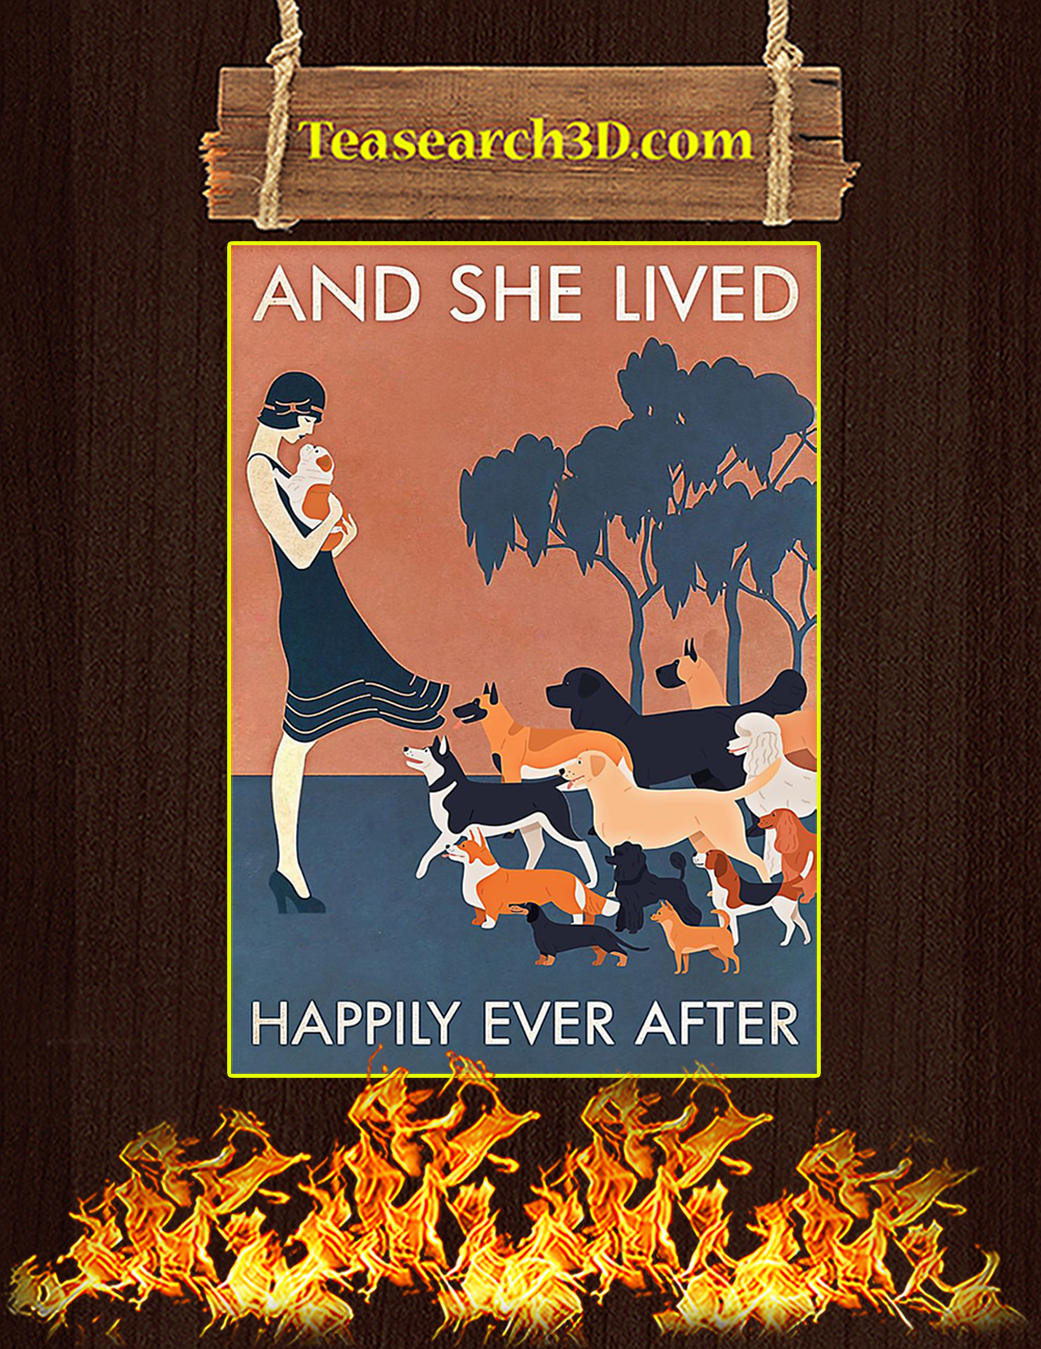 Dogs And she lived happily ever after poster A1